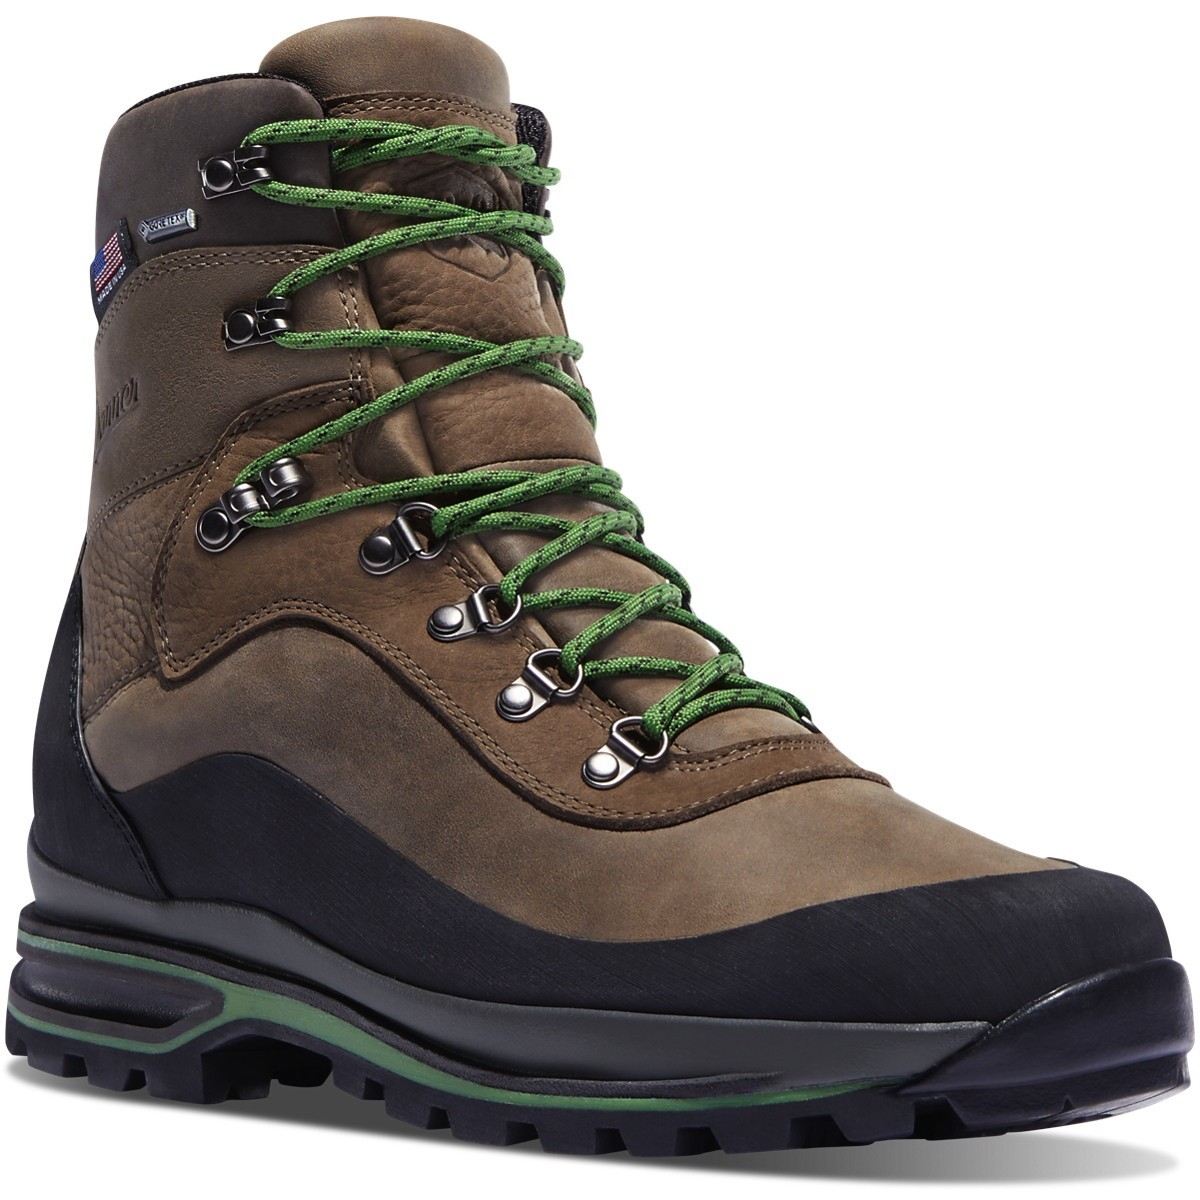 Danner Crag Rat Hiking Boots